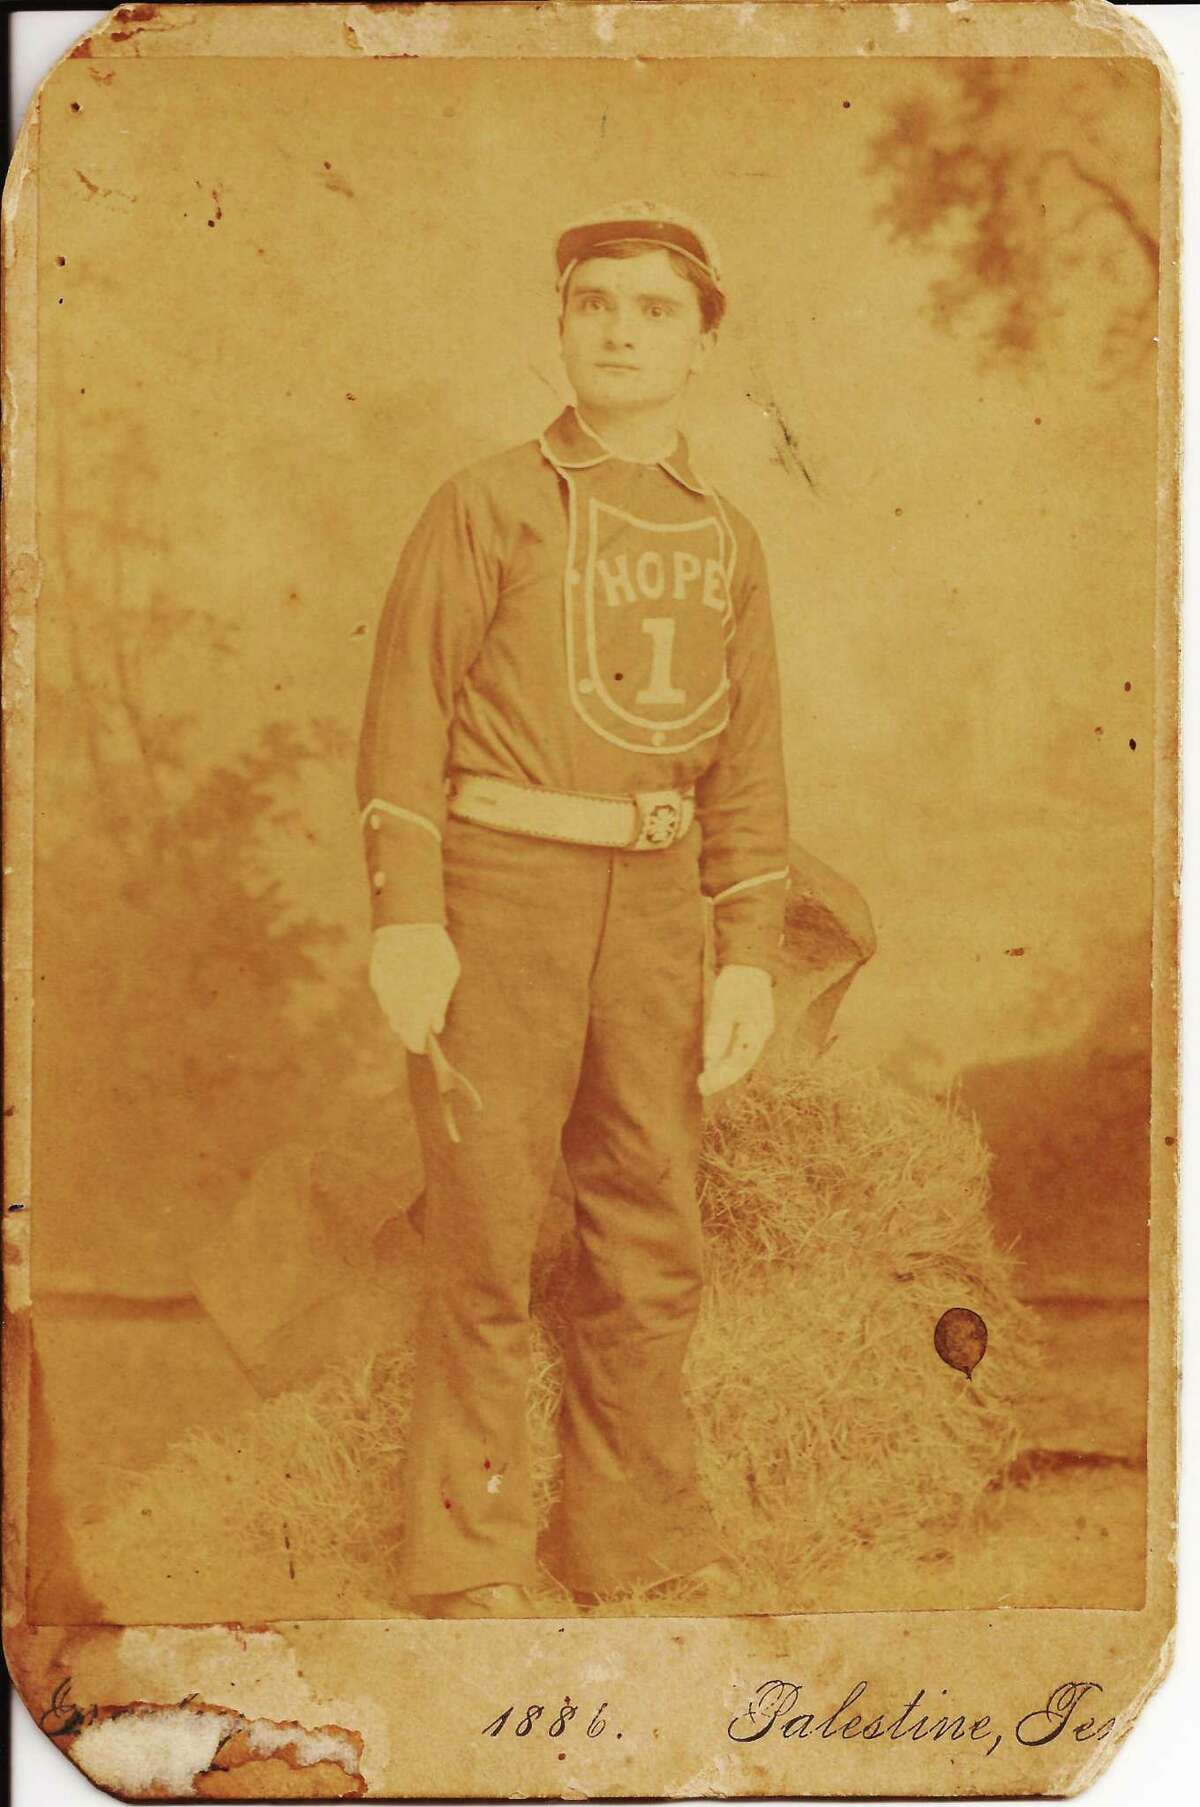 Giovanni Bernardoni, shown in 1886 in a volunteer fireman's uniform in Palestine, Texas, emigrated from Bientina, Italy to the U.S. through New Orleans. He and his wife, Lucile Cariola Bernardoni, had two children in New Orleans but moved to Galveston, where he opened a tavern on Broadway shortly before the 1900 storm. He perished in the storm after placing his wife and two children on higher ground and going back to help neighbors. His great grandson, John M. Bernardoni, leads the Lost Coppini Statue Project to recreate a memorial to the storm victims that was designed by Italian sculptor Pompeo Coppini in 1904 but never realized in bronze.